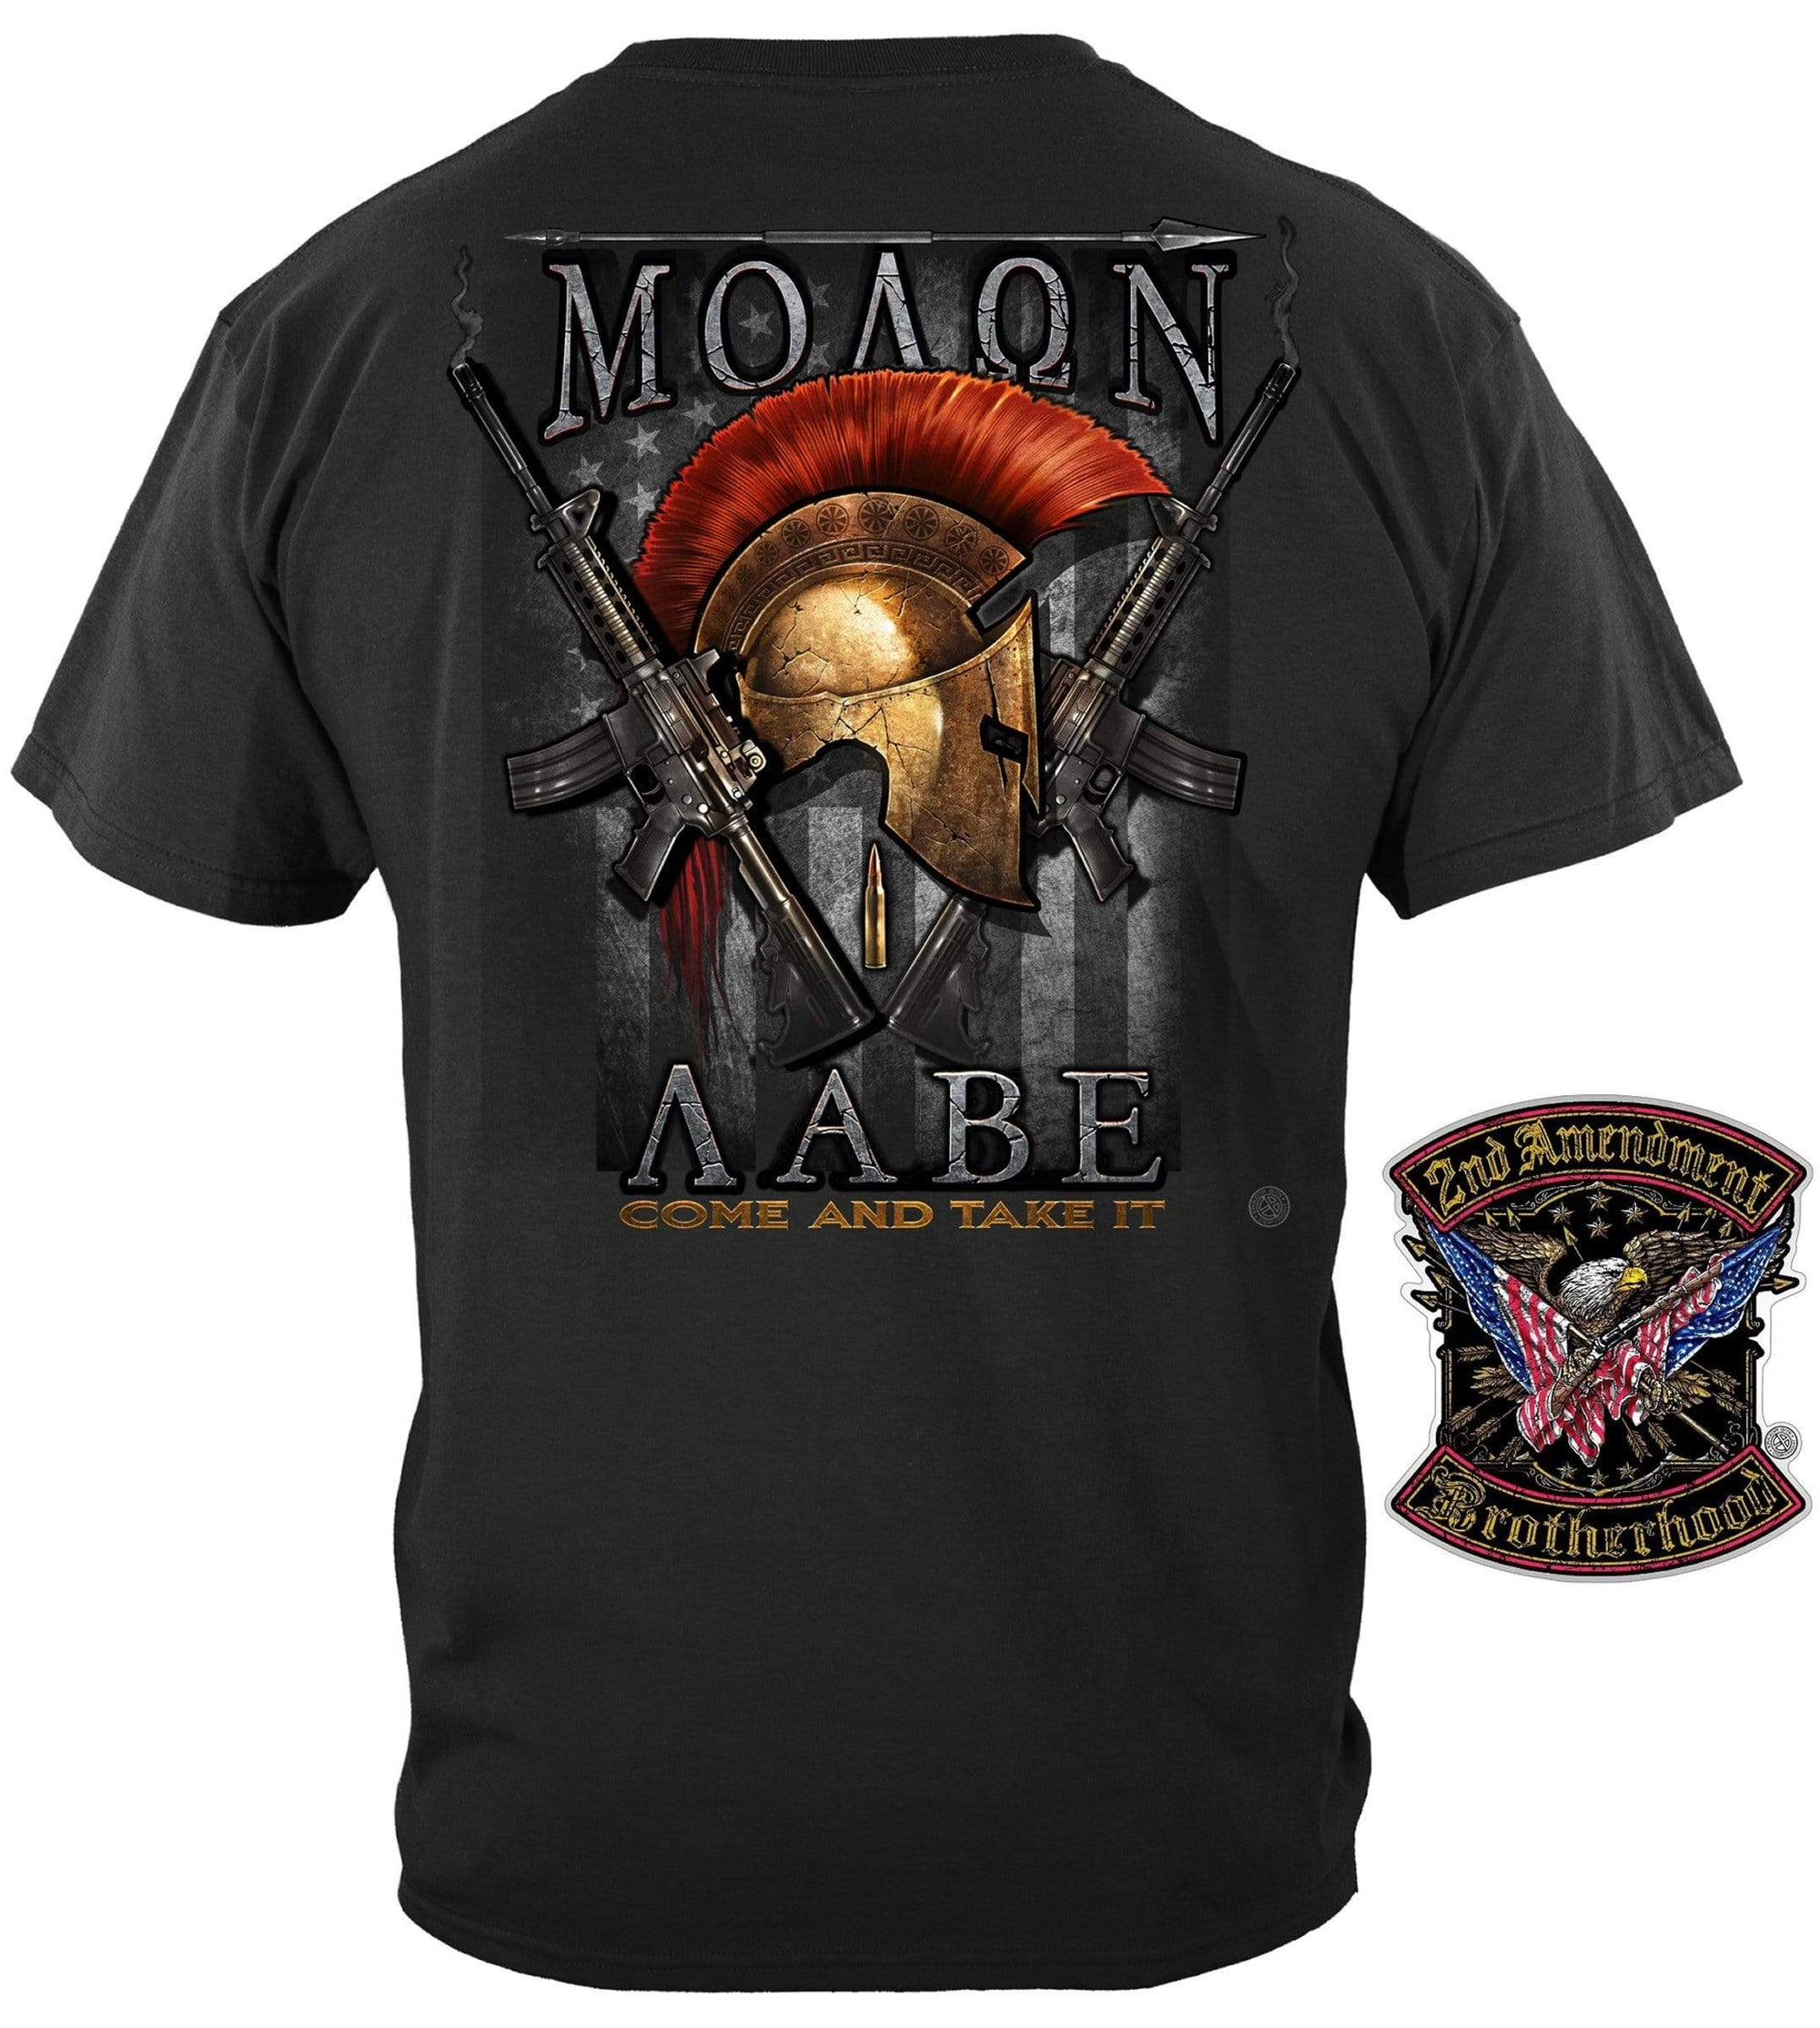 Molon Labe T-Shirt with *FREE DECAL worth $5.95*